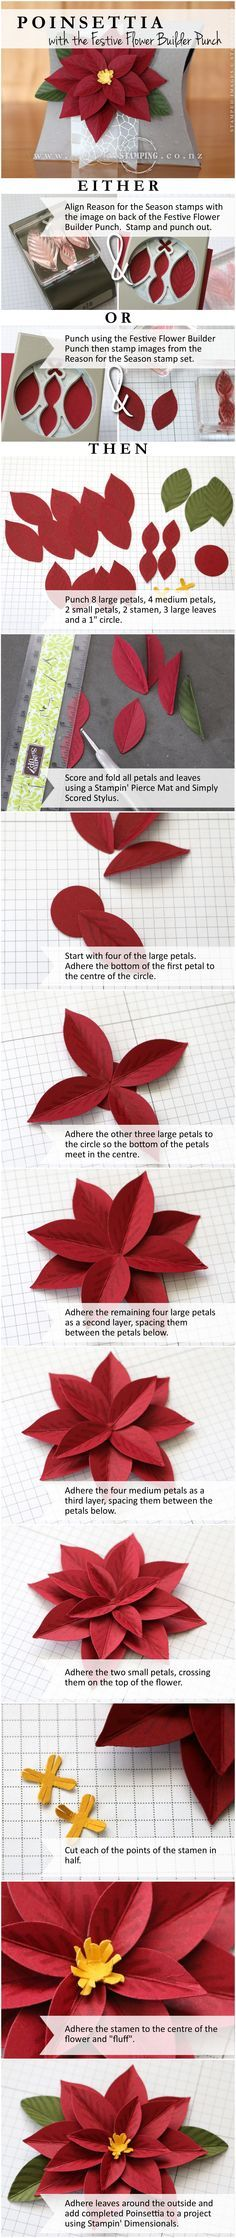 Create a Christmas Poinsettia with the Festive Flower Builder Punch and coordinating Reason for the Season stamp set. http://www3.stampinup.com/ECWeb/ProductDetails.aspx?productID=140847&dbwsdemoid=4002741   www.creativestamping.co.nz   Stampin' Up!   2015 Holiday Catalogue